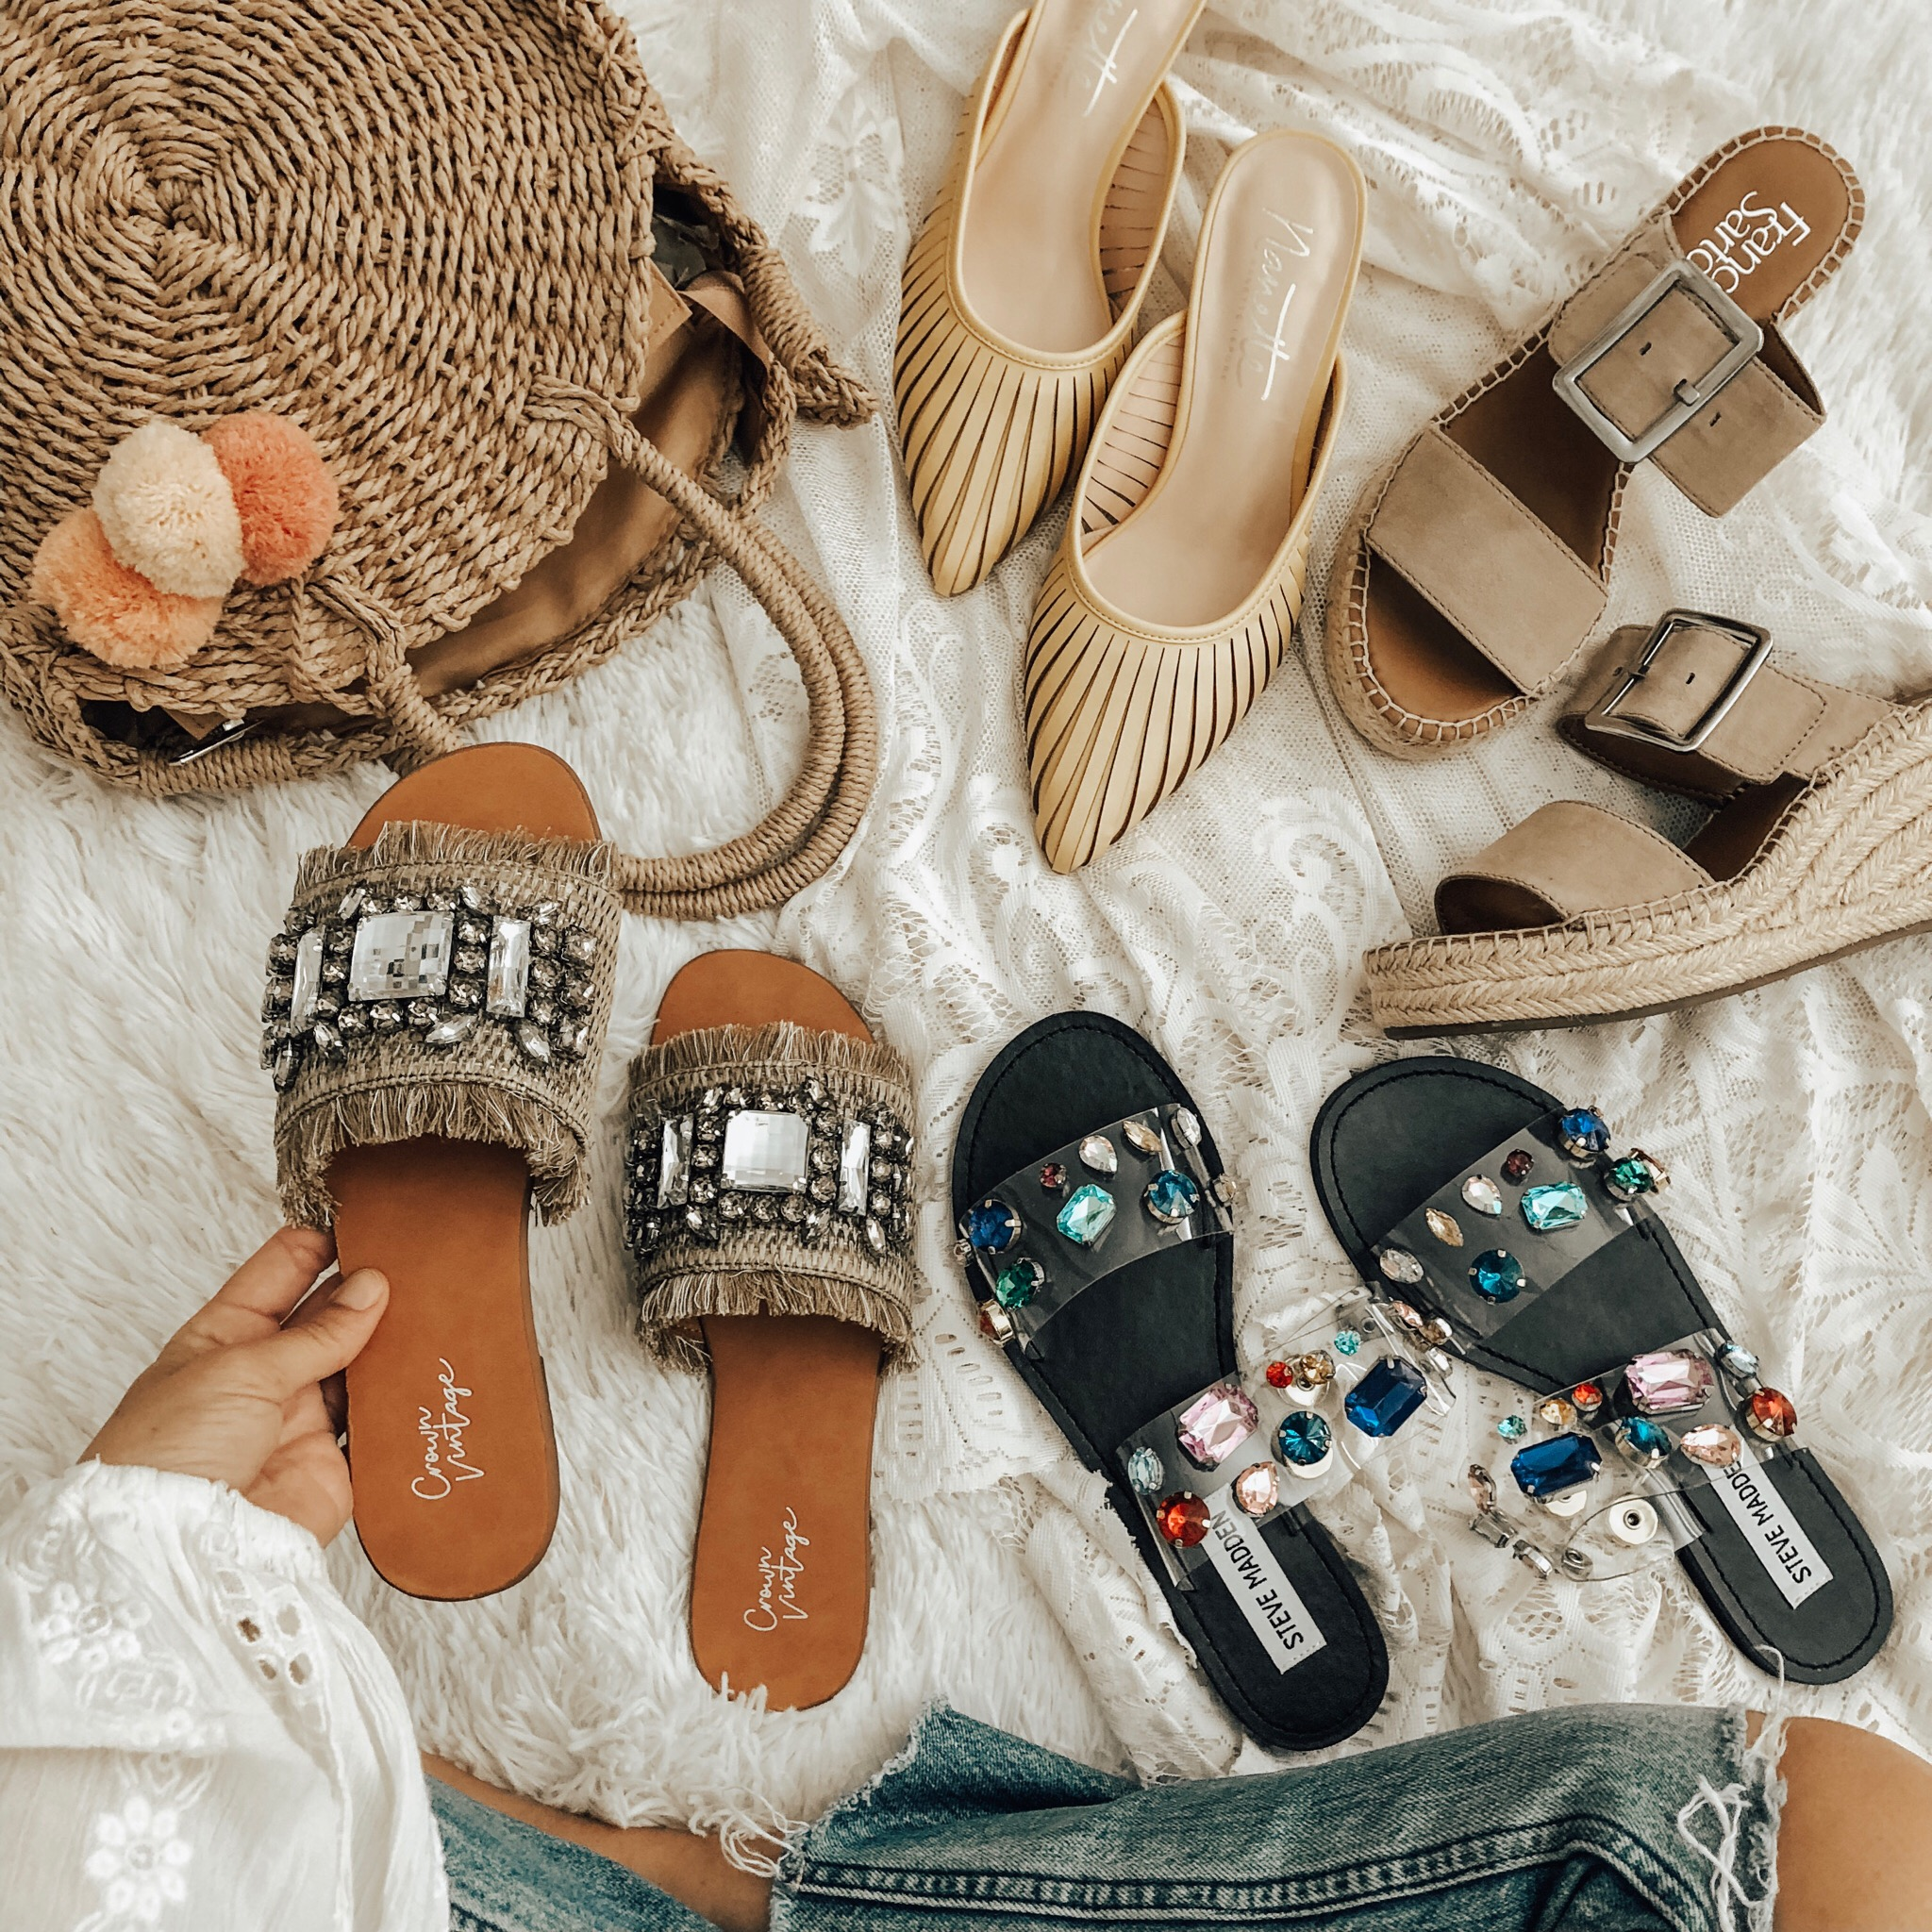 MARCH TOP 10- Jaclyn De Leon Style + My top ten selling items from the month of March are everything from the coziest jumpsuit, jewelry travel case, swim suit cover up, espadrilles and of course the cutest embellished slide sandals. Most of the favorites were from Target, Amazon, DSW and Abercrombie!